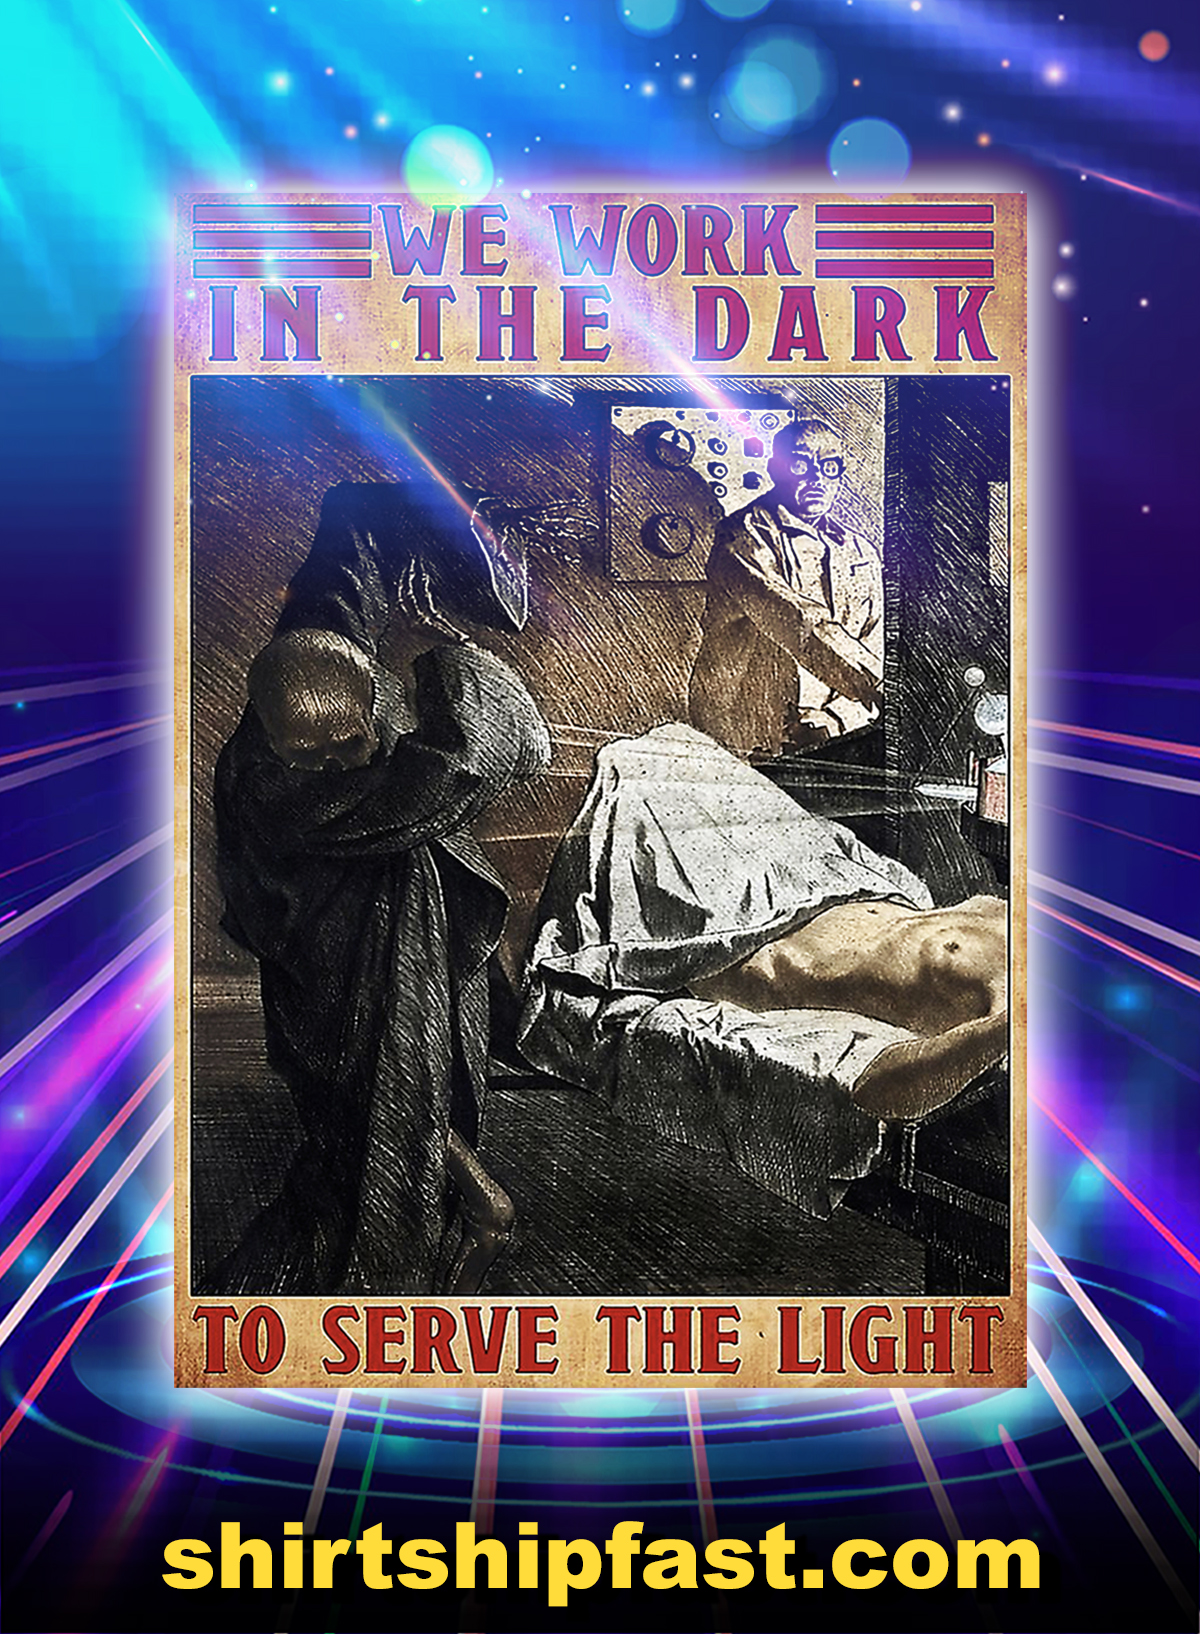 Radiologist we work in the dark to serve the light poster - A1